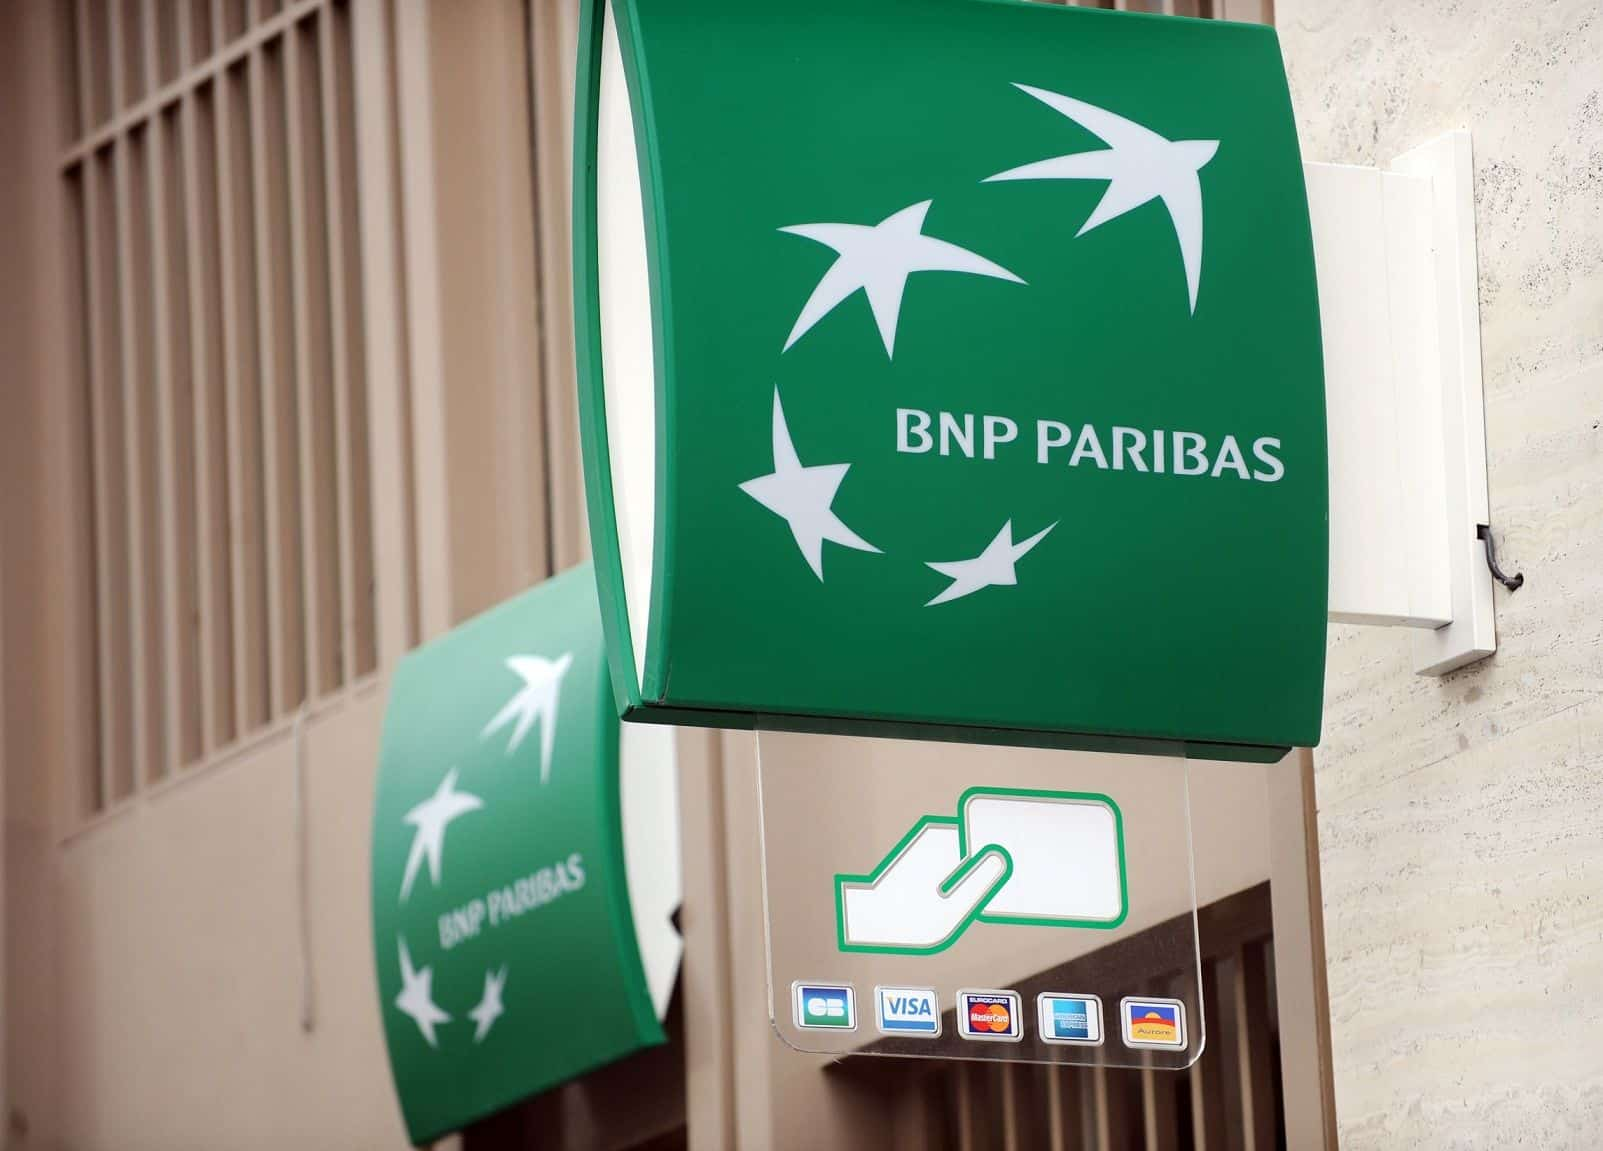 French Banking Giant BNP Paribas Reports Rise in Profits in Second Quarter